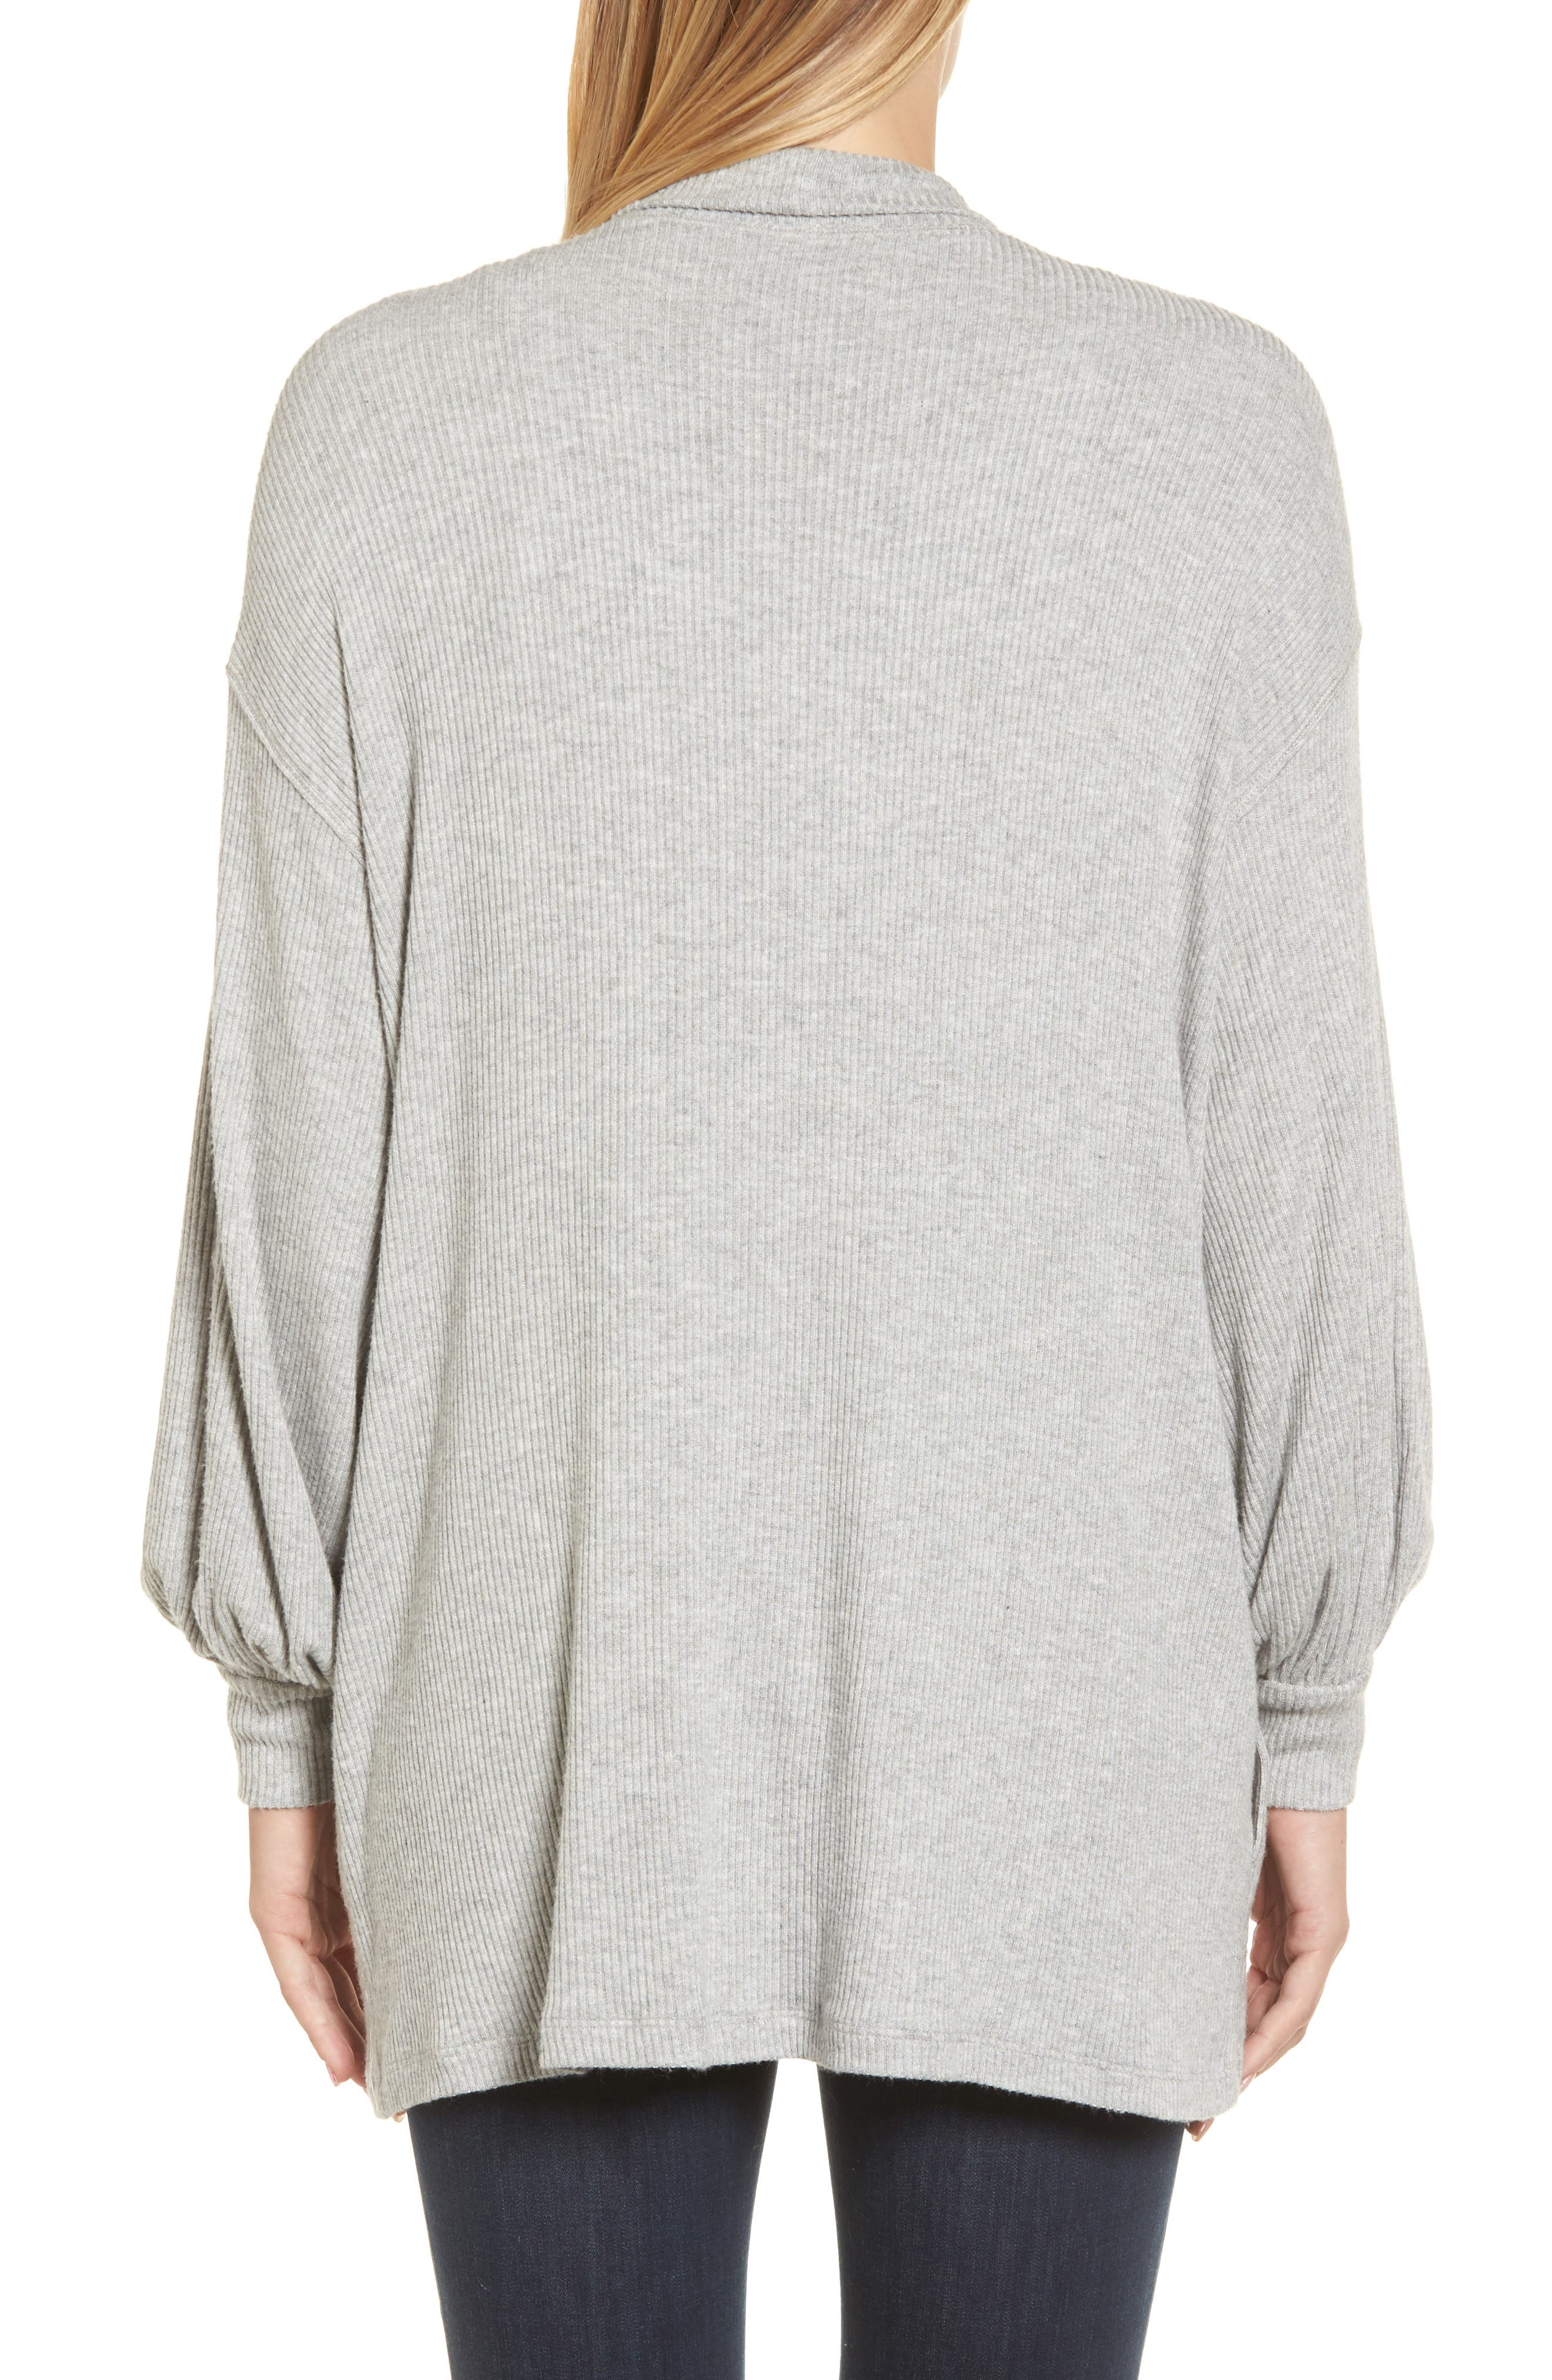 Ribbed Blouson Sleeve Cardigan,                             Alternate thumbnail 2, color,                             Heather Grey